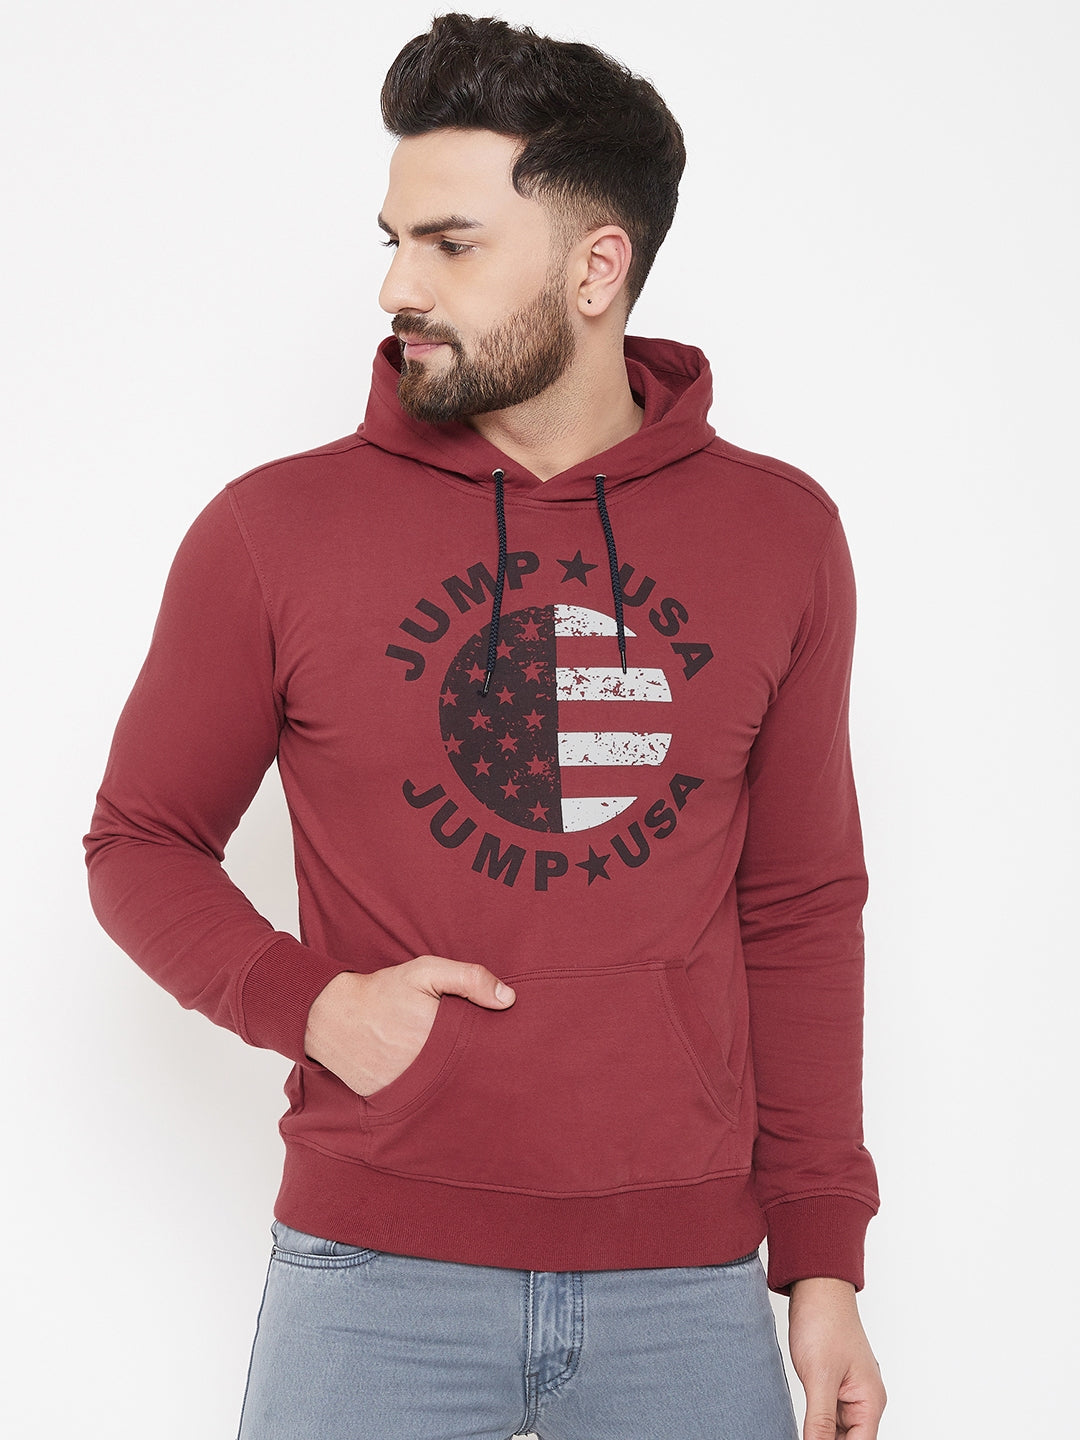 JUMP USA Men Red Self Design Hooded Pullover Sweatshirt - JUMP USA